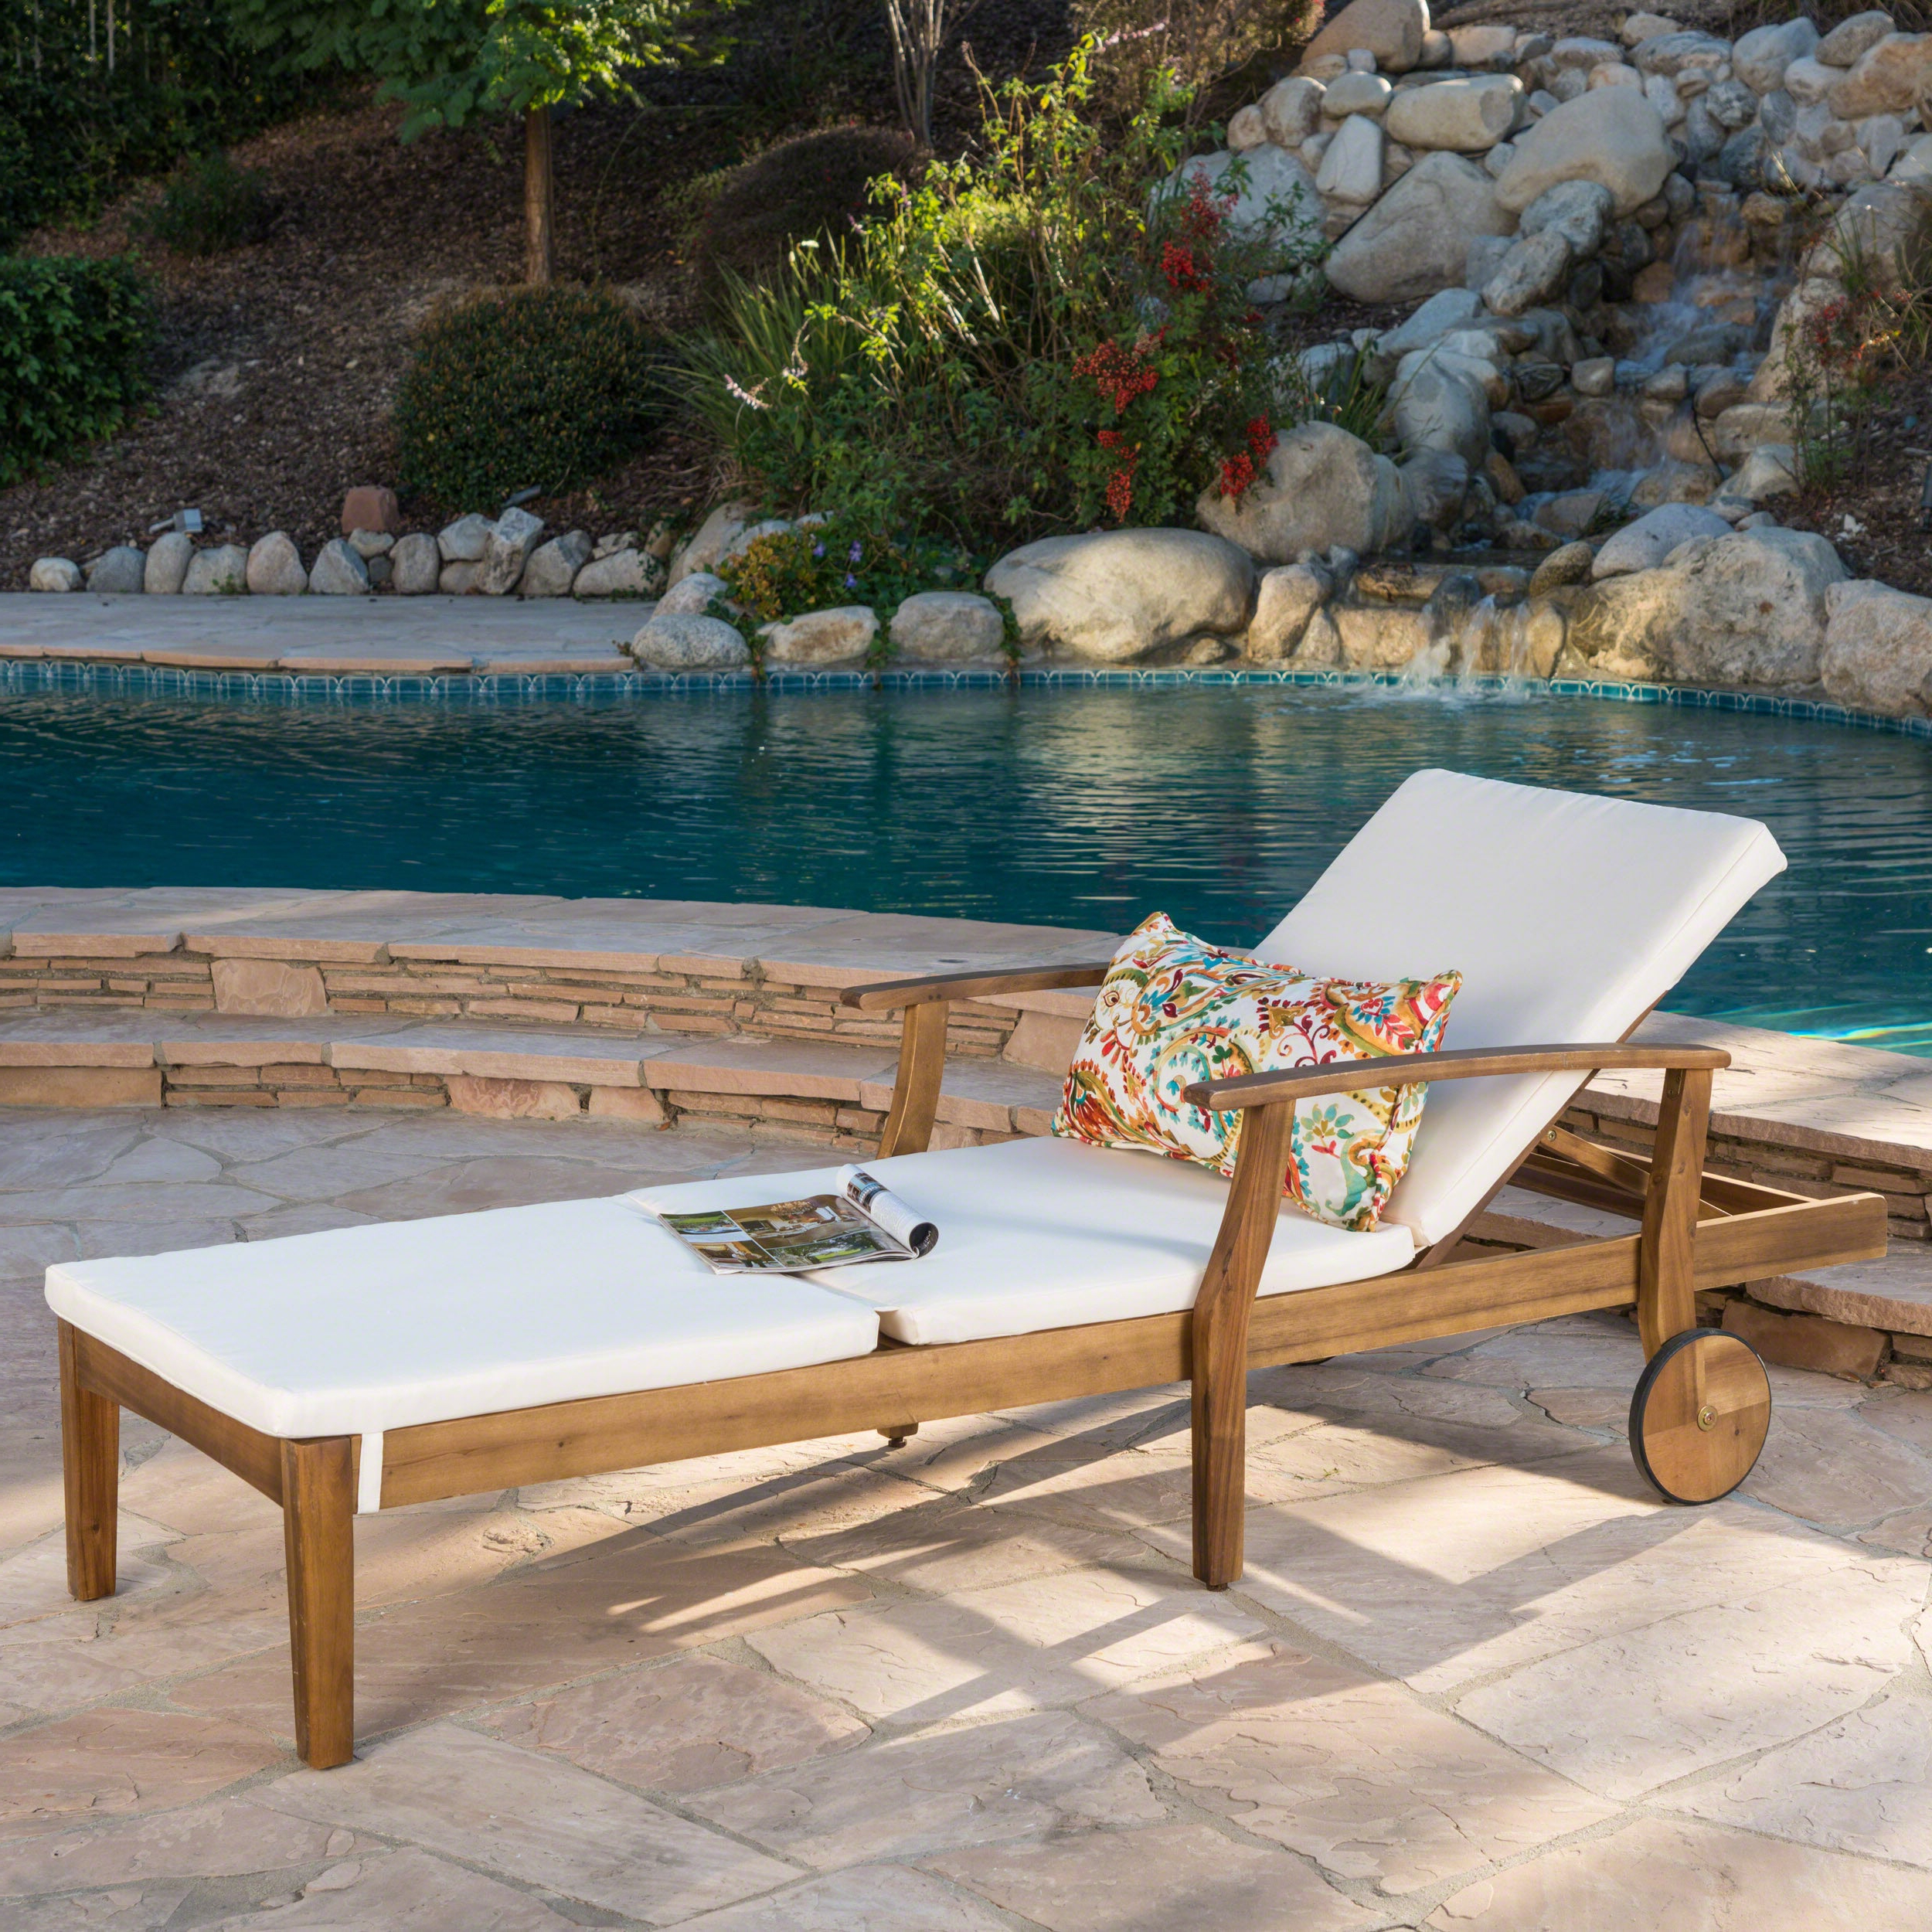 Perla Outdoor Acacia Wood Chaise Lounge With Cushion Pertaining To Preferred Perla Outdoor Acacia Wood Chaise Lounge With Cushionchristopher Knight Home (View 2 of 25)